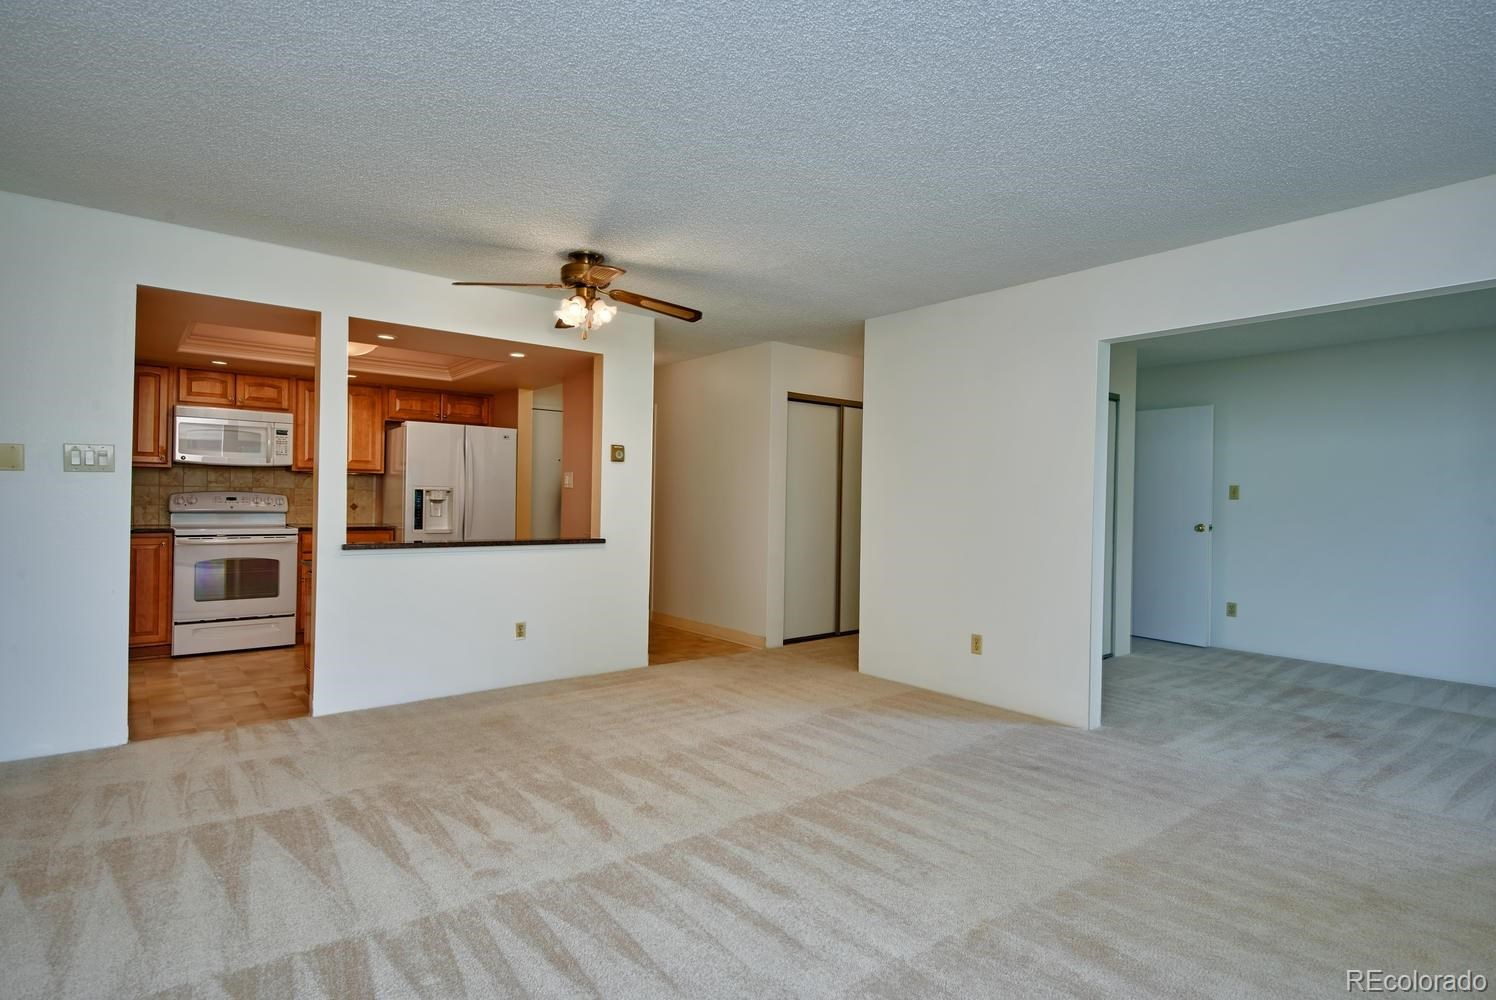 MLS# 4317500 - 8 - 13850 E Marina Drive #106, Aurora, CO 80014